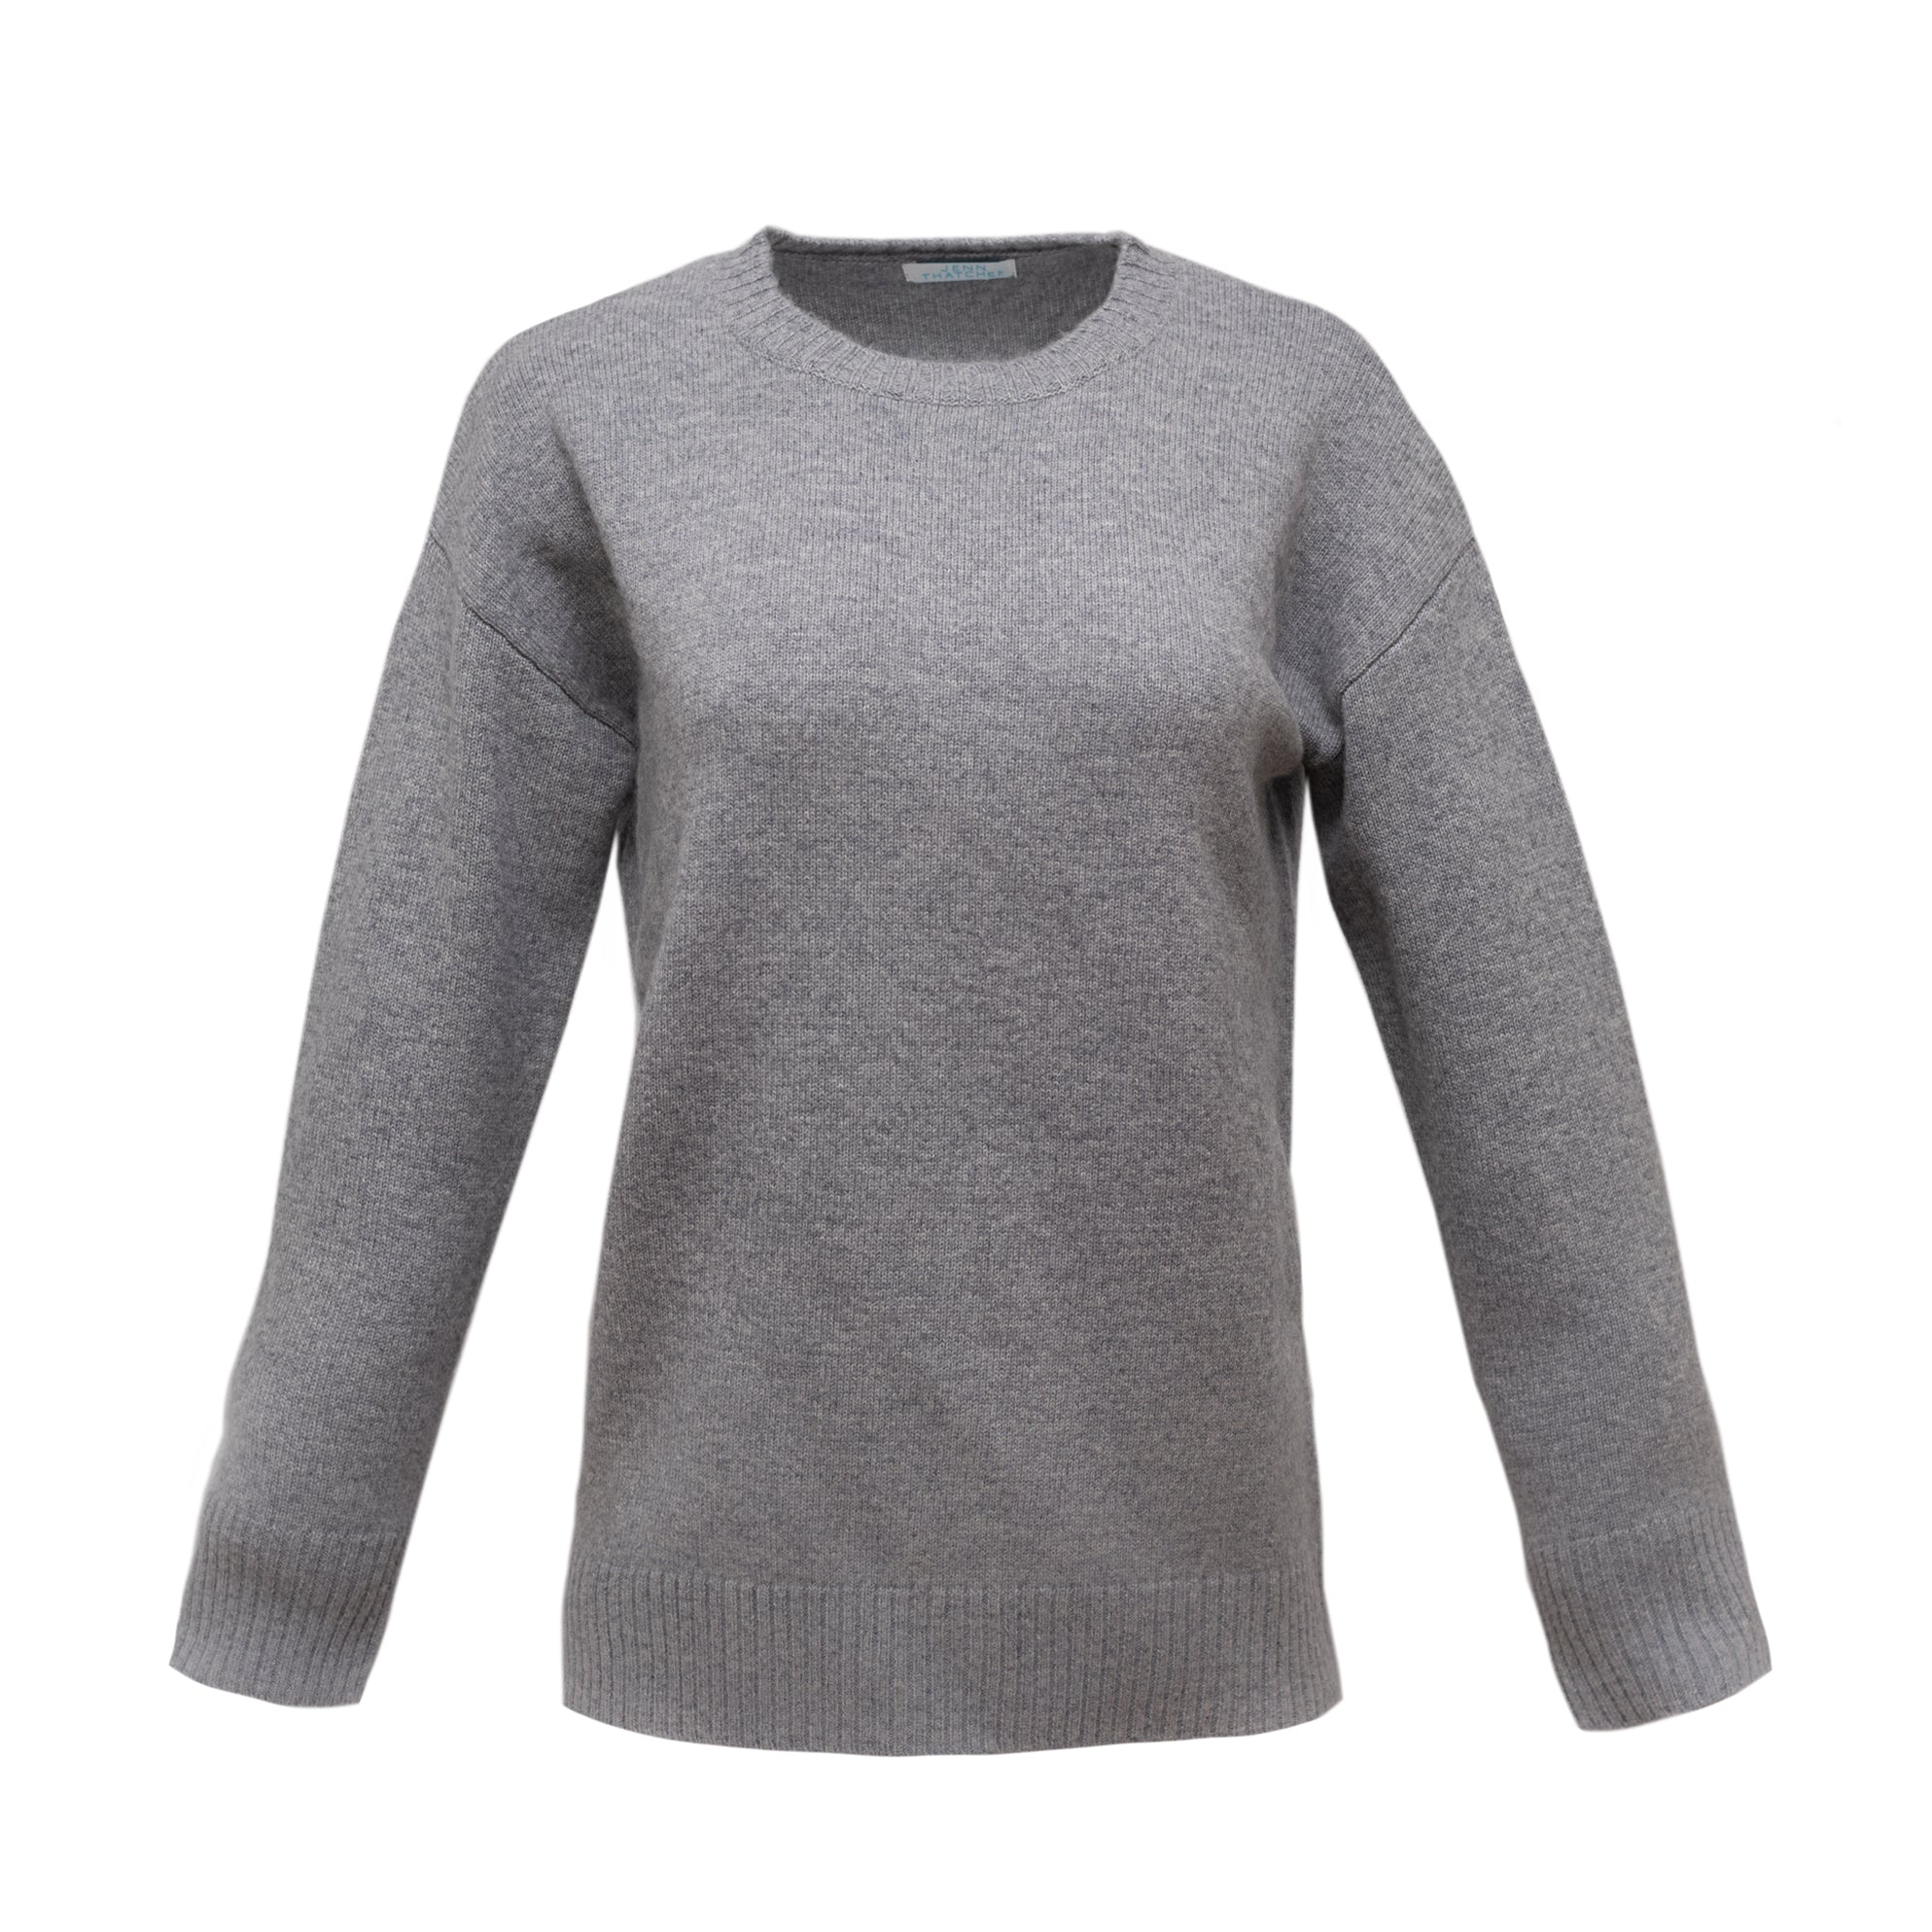 The Diana Cashmere Sweater in Grey